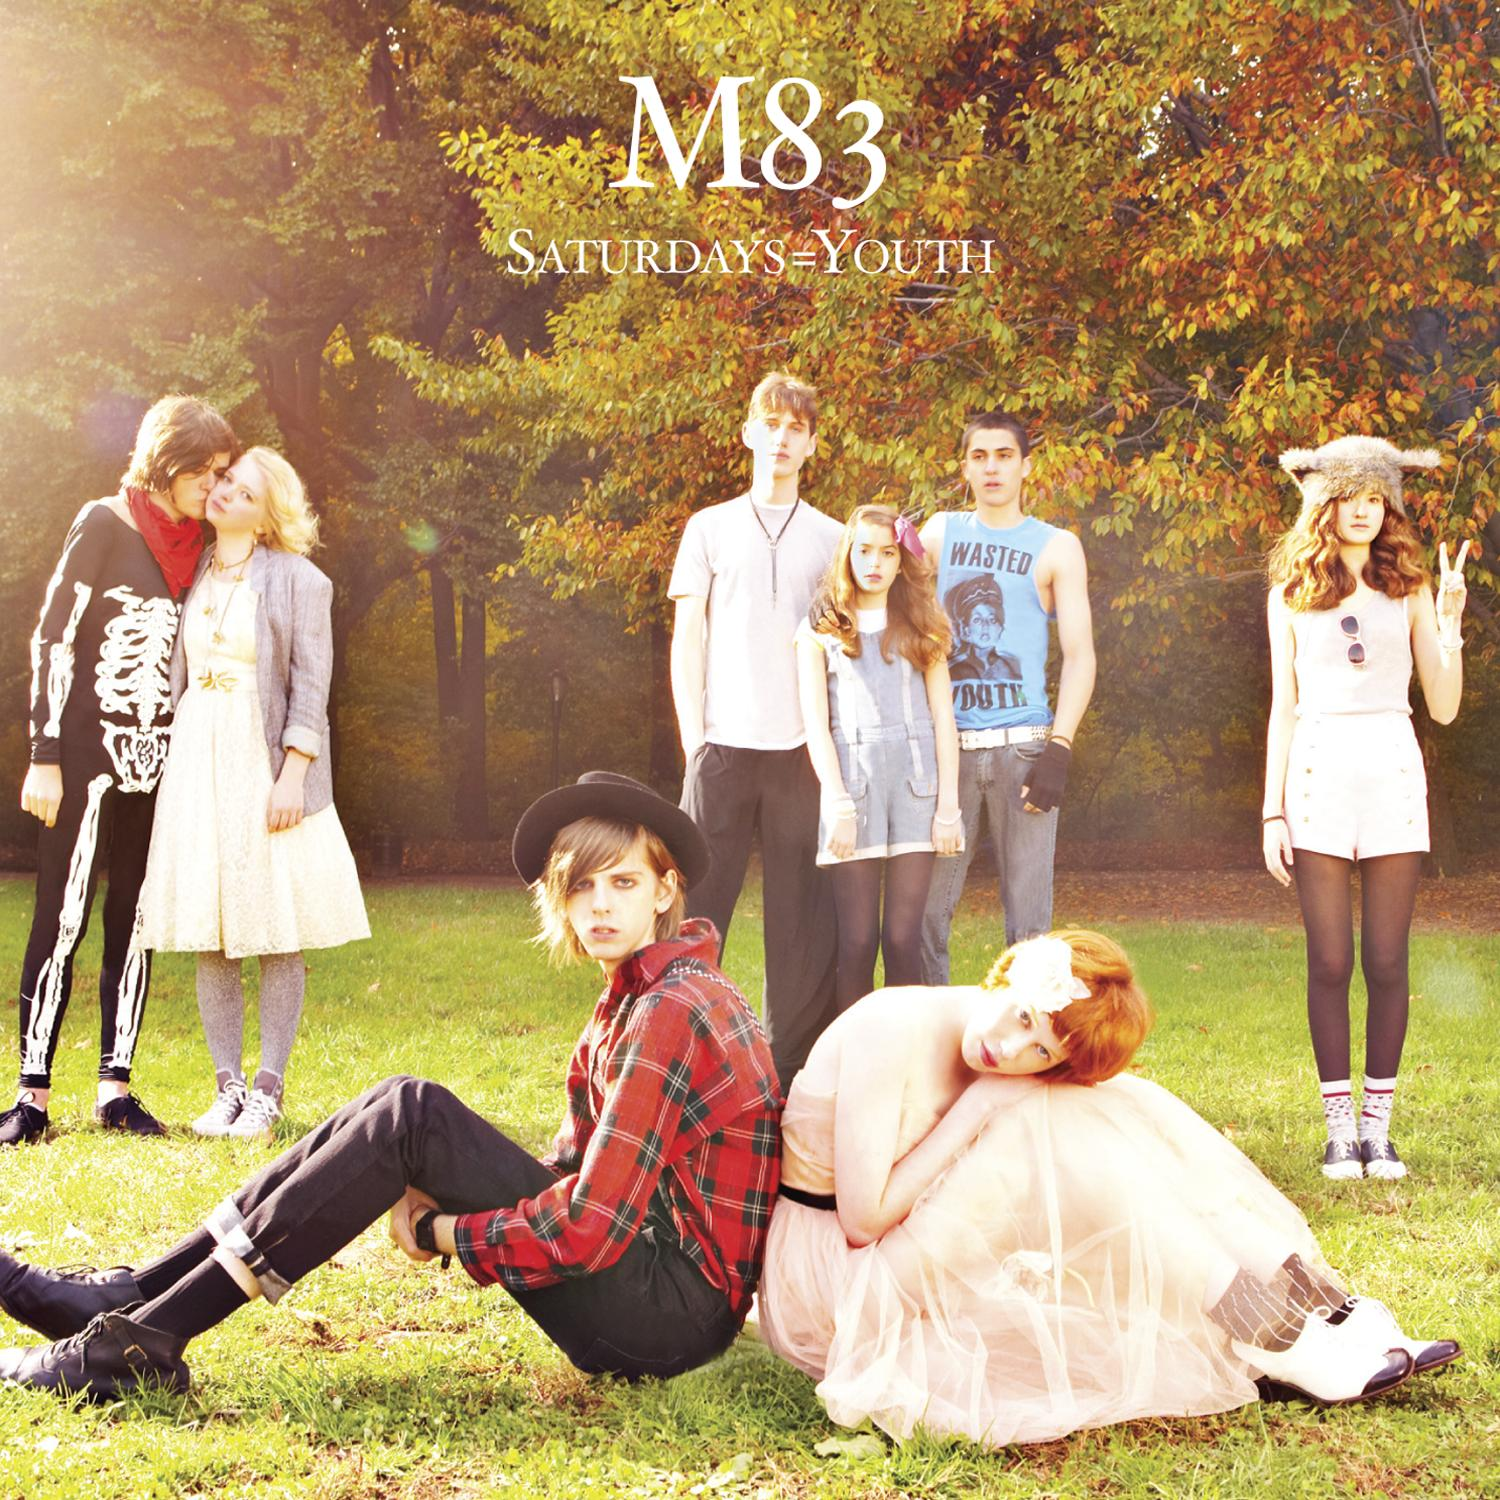 Job Opportunity: M83 Needs A Female Singer/Keyboardist ASAP